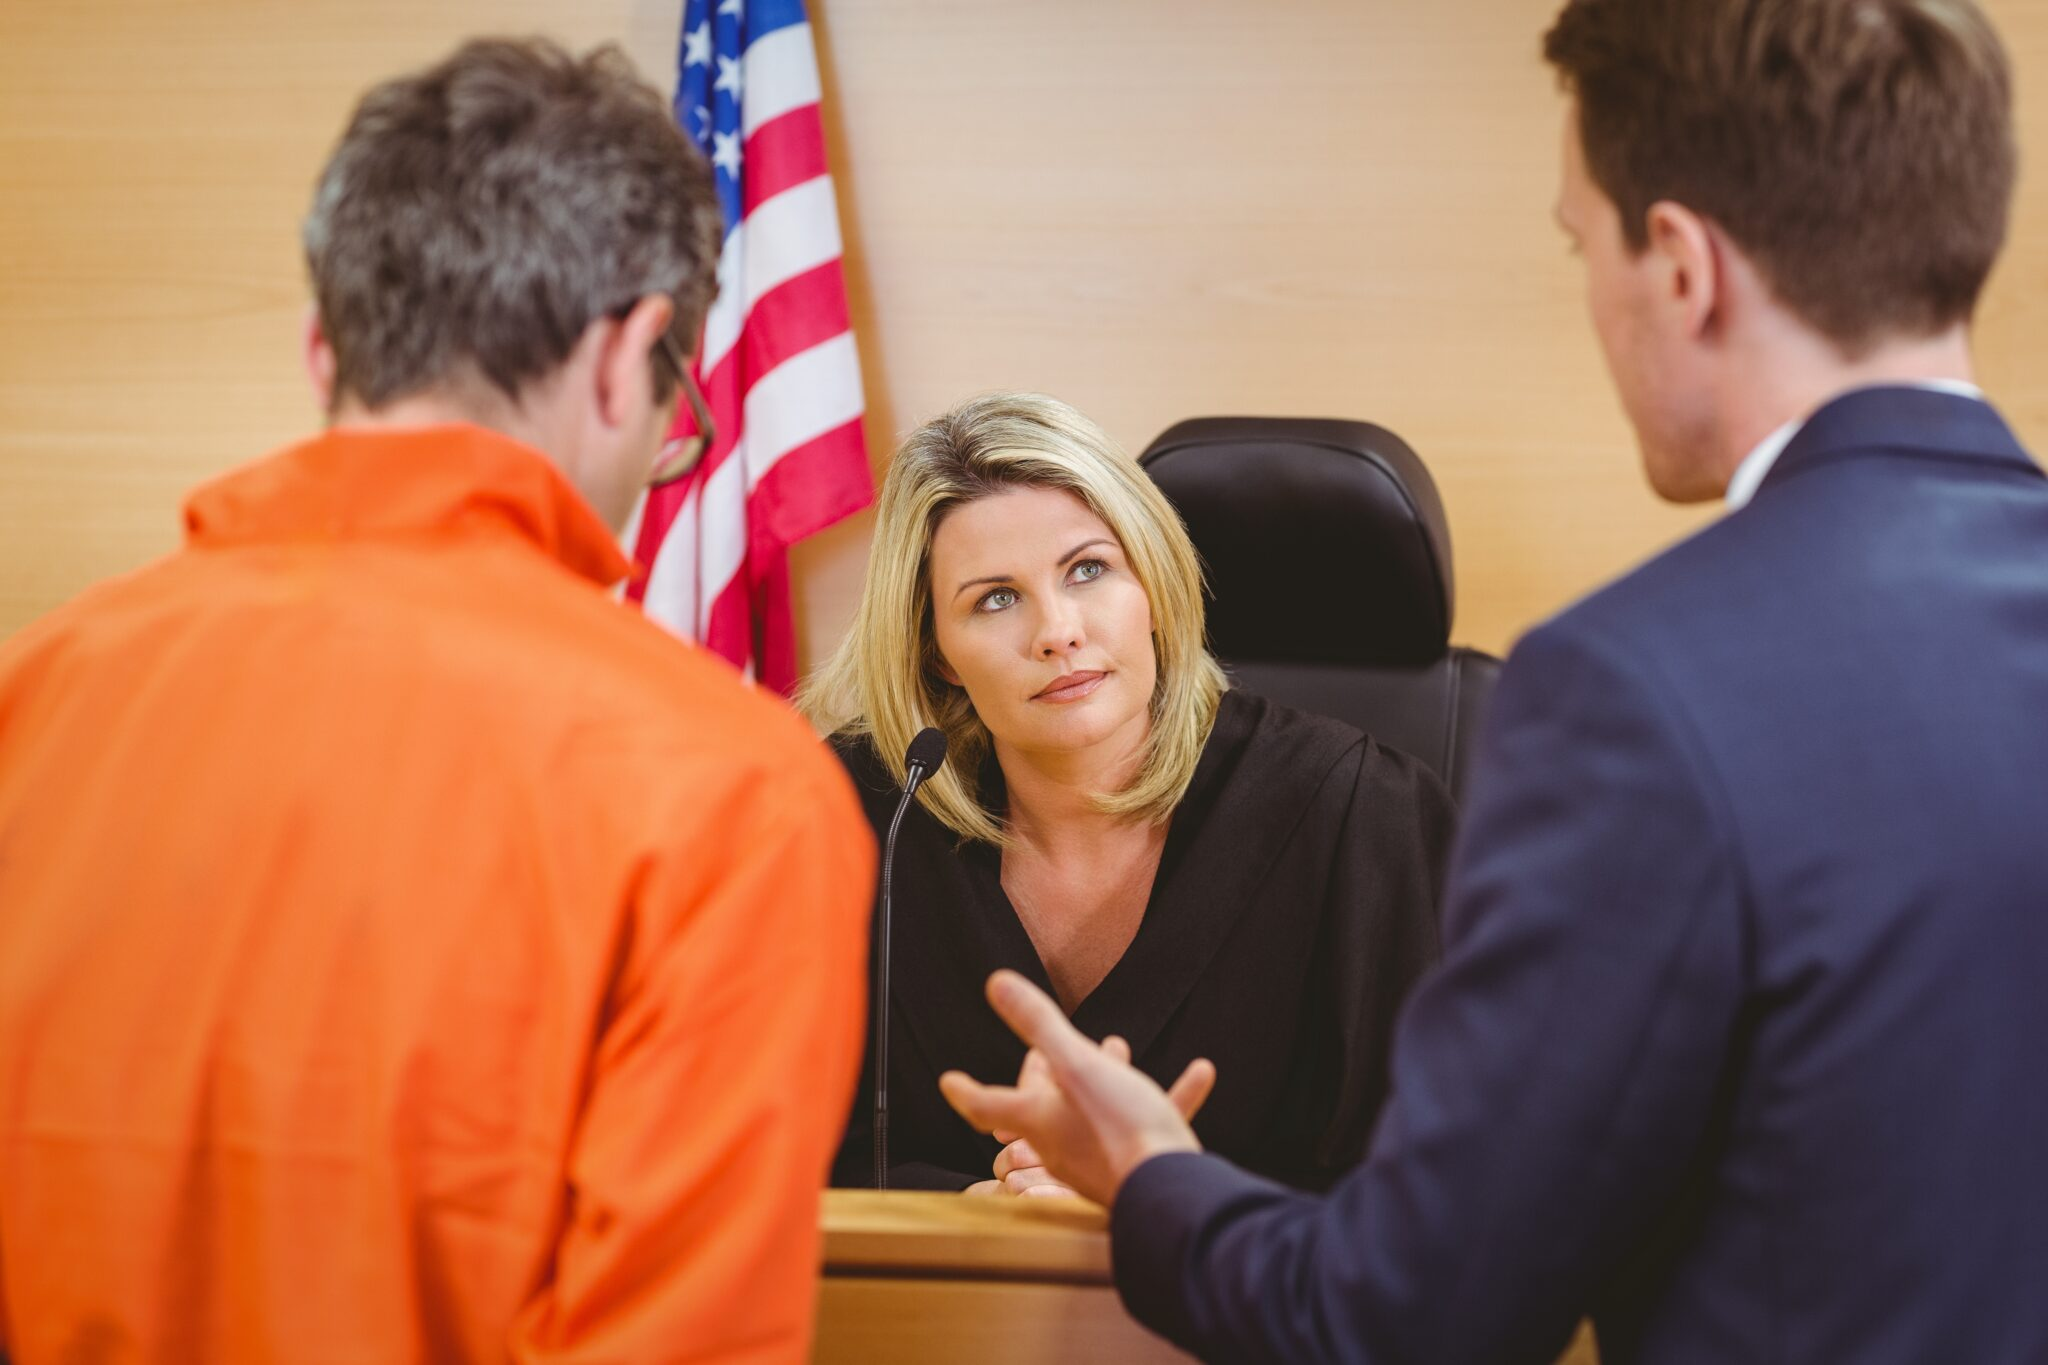 Lawyer-Speaking-To-Judge-About-Defendant